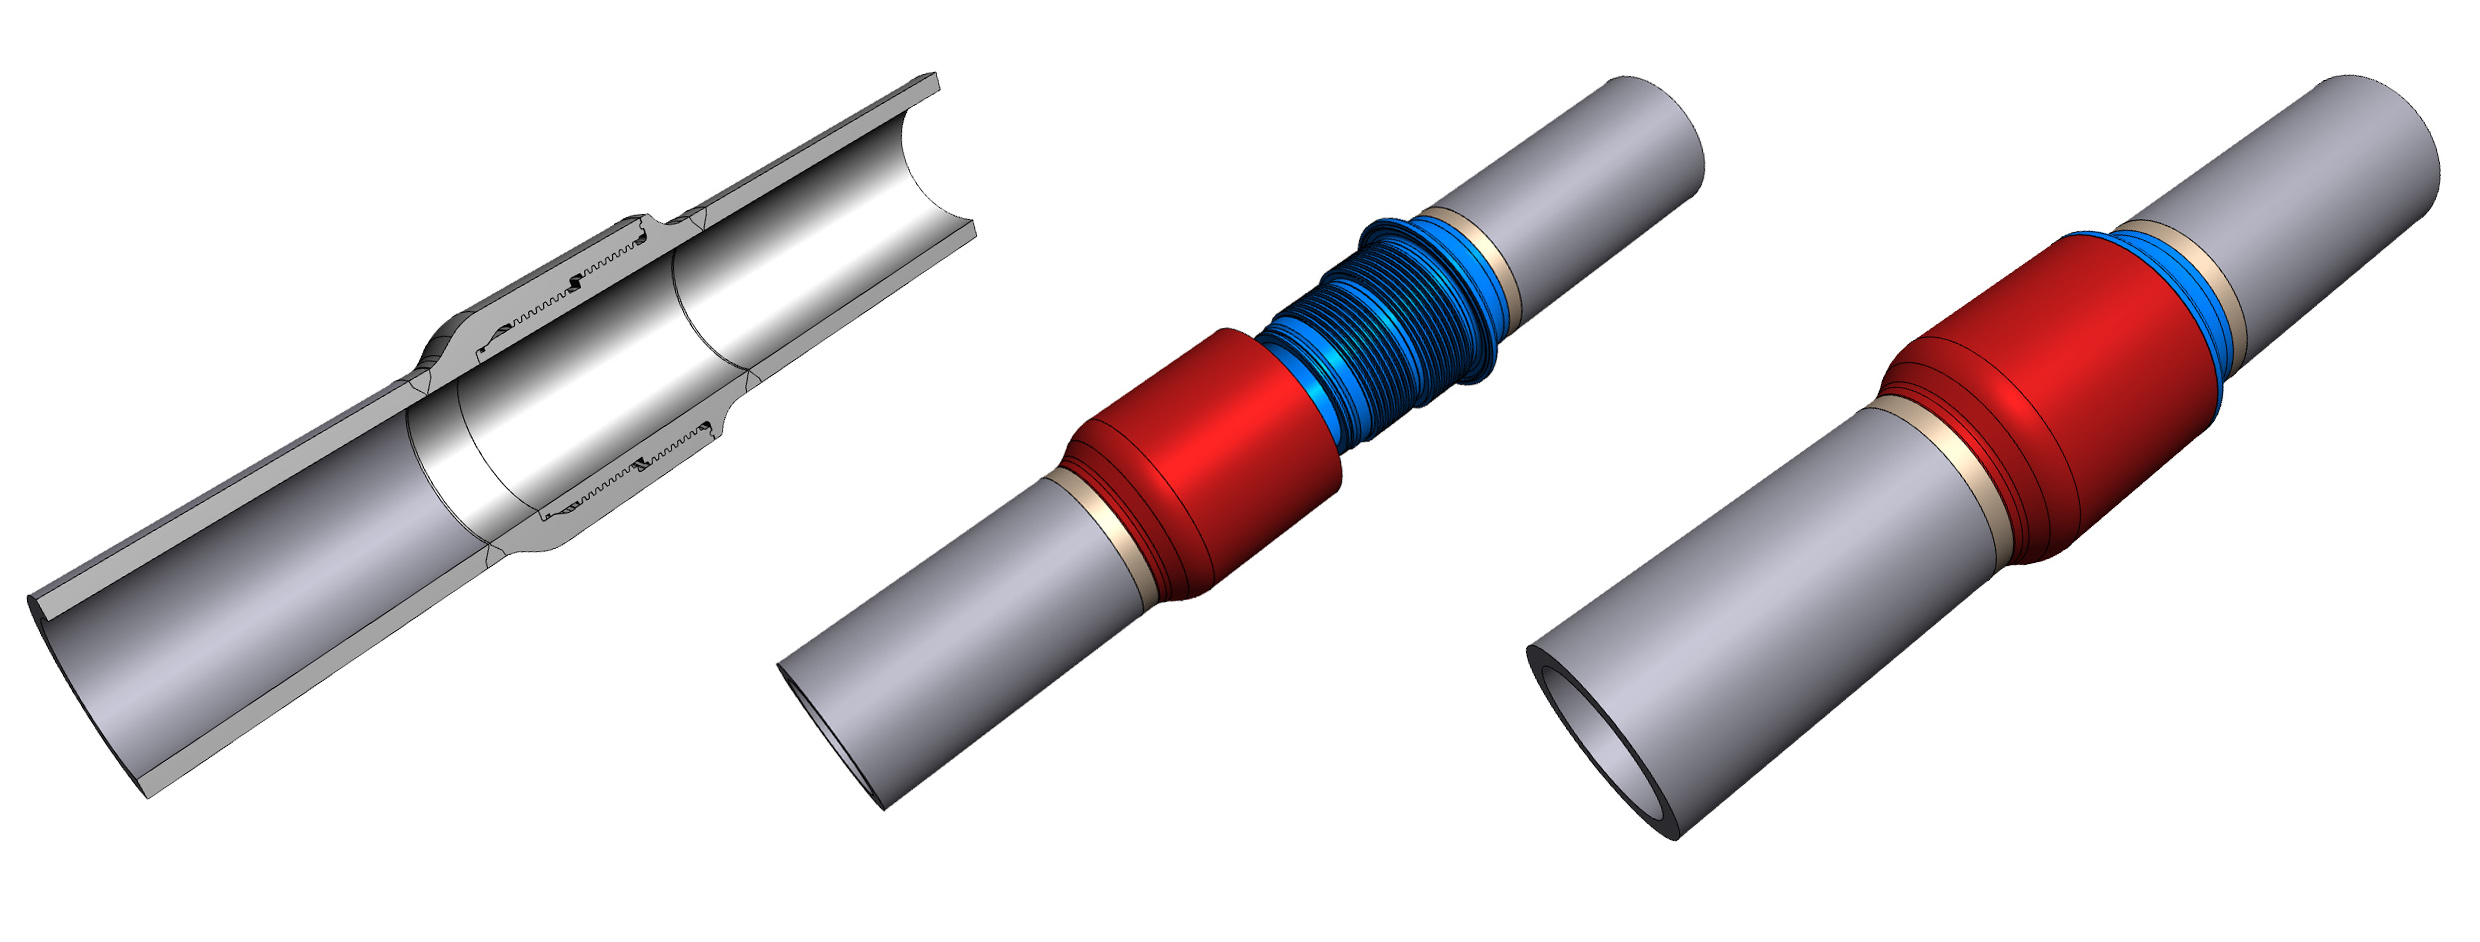 HMP Range Of Threaded Pipe Couplings